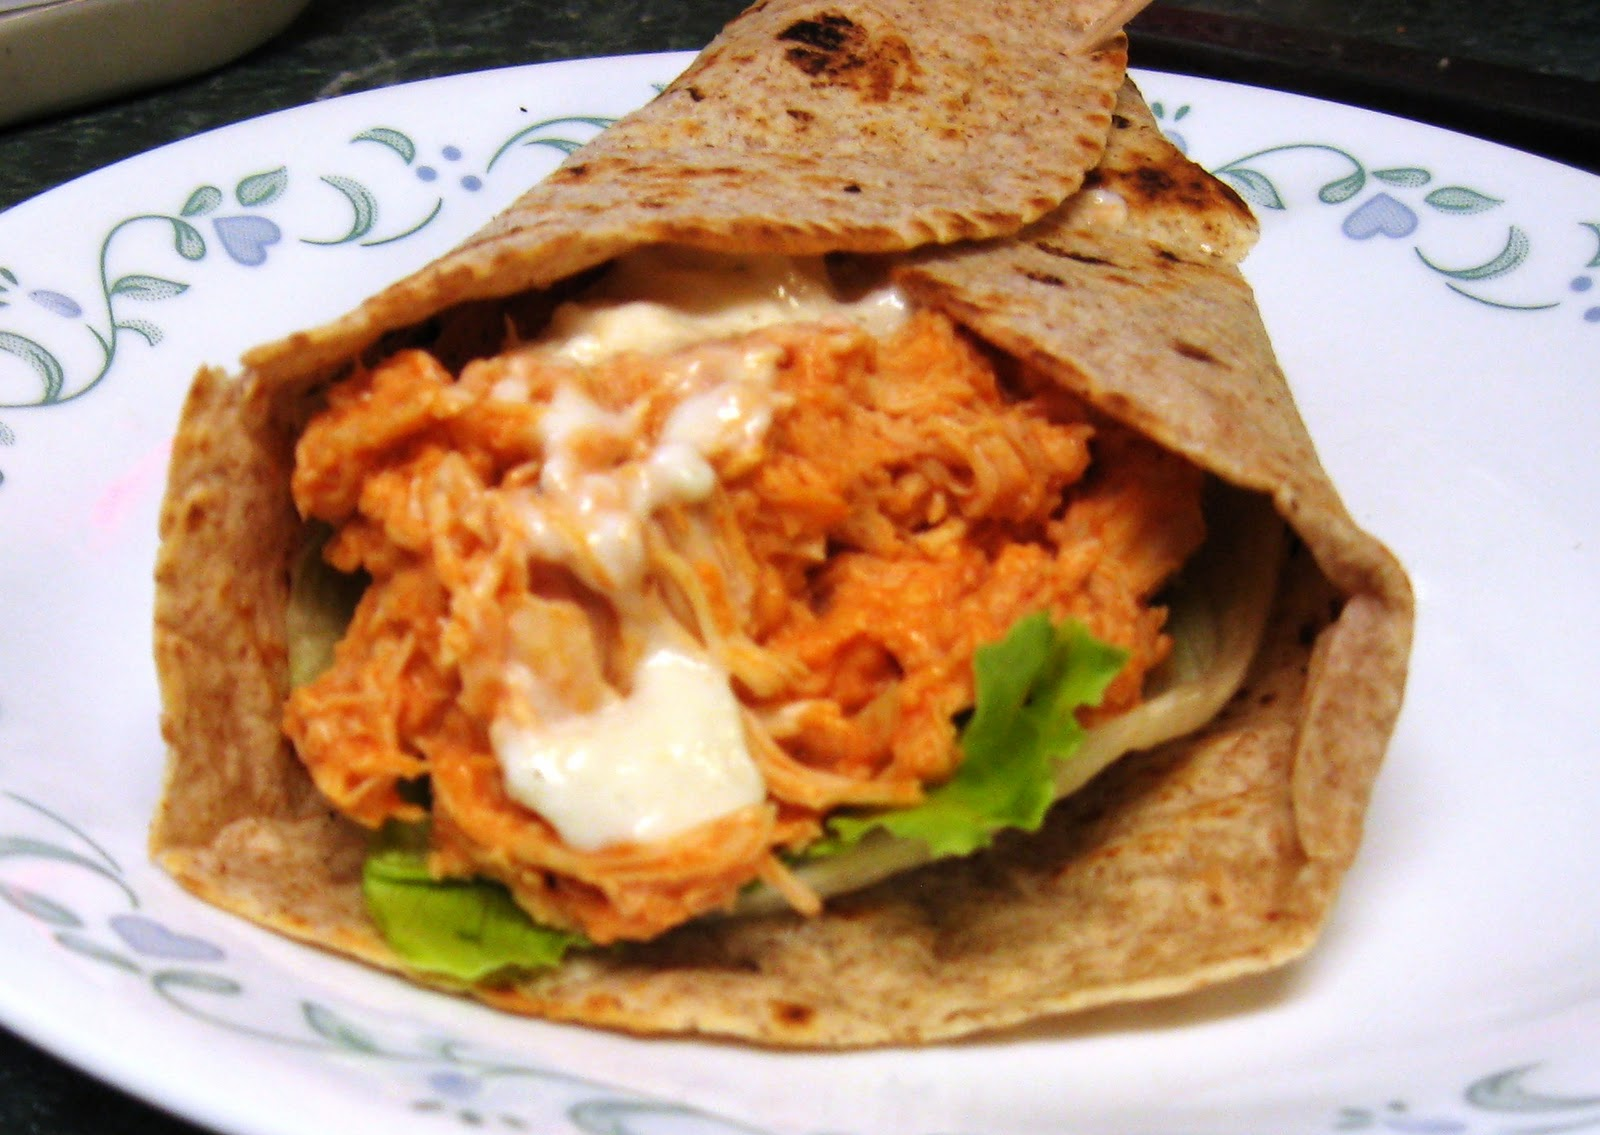 ... Dinner... Healthy & Low Calorie: Slow Cooker Buffalo Chicken Wraps